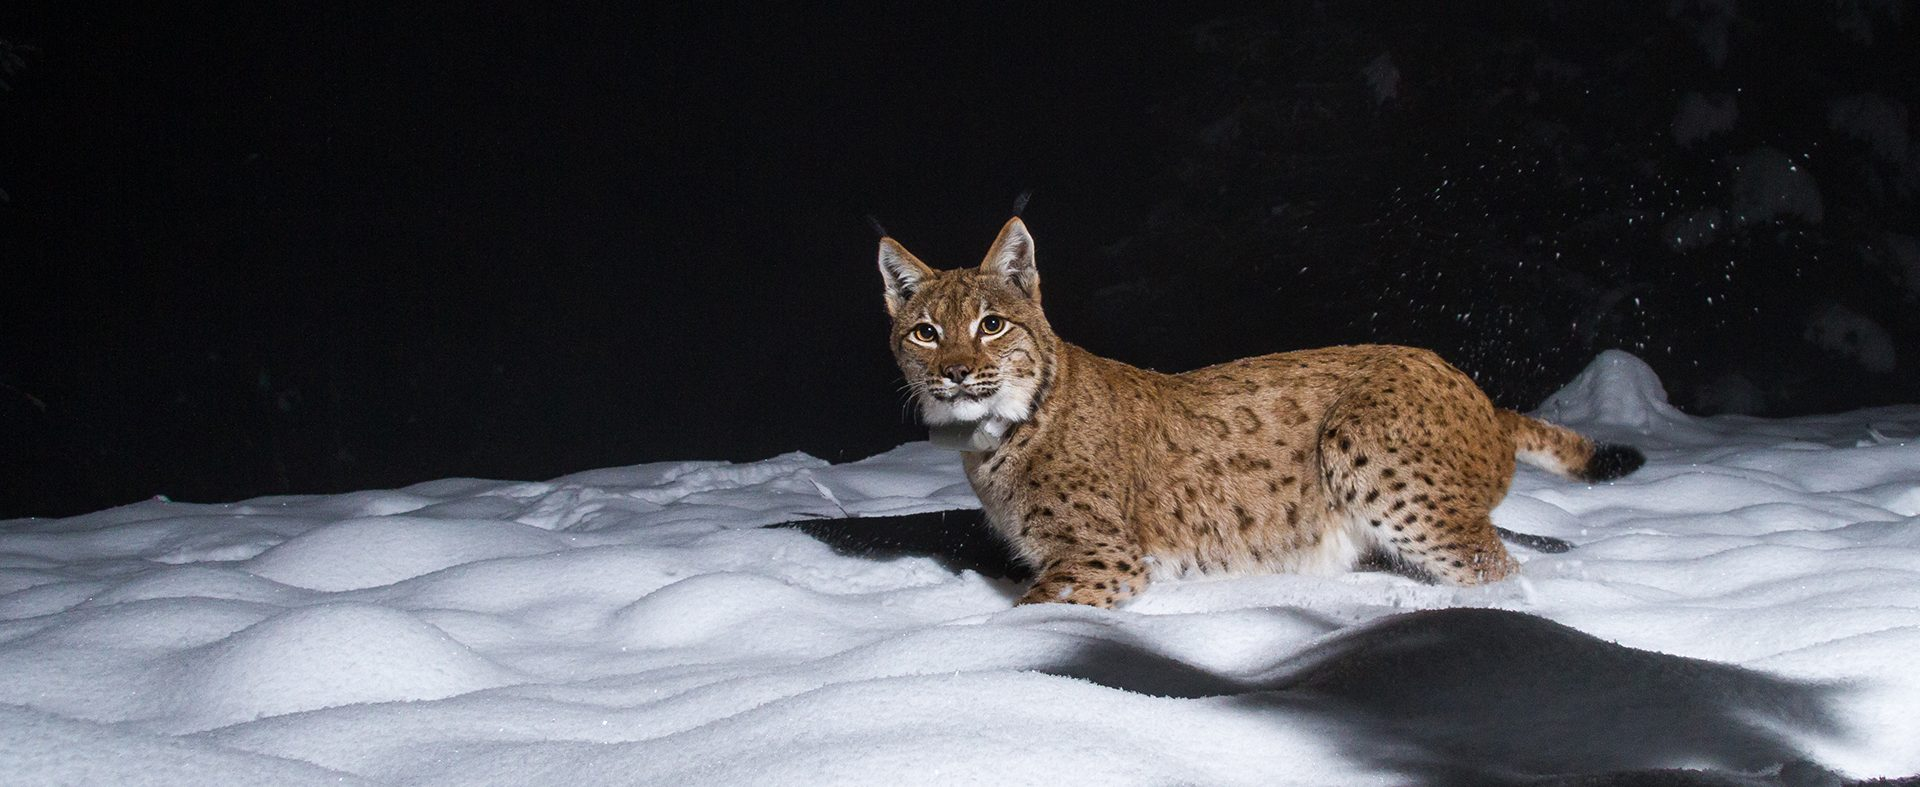 The Living on the Edge project came about due to the scarcity of brown bears, wolves and Eurasian lynx in Austria.